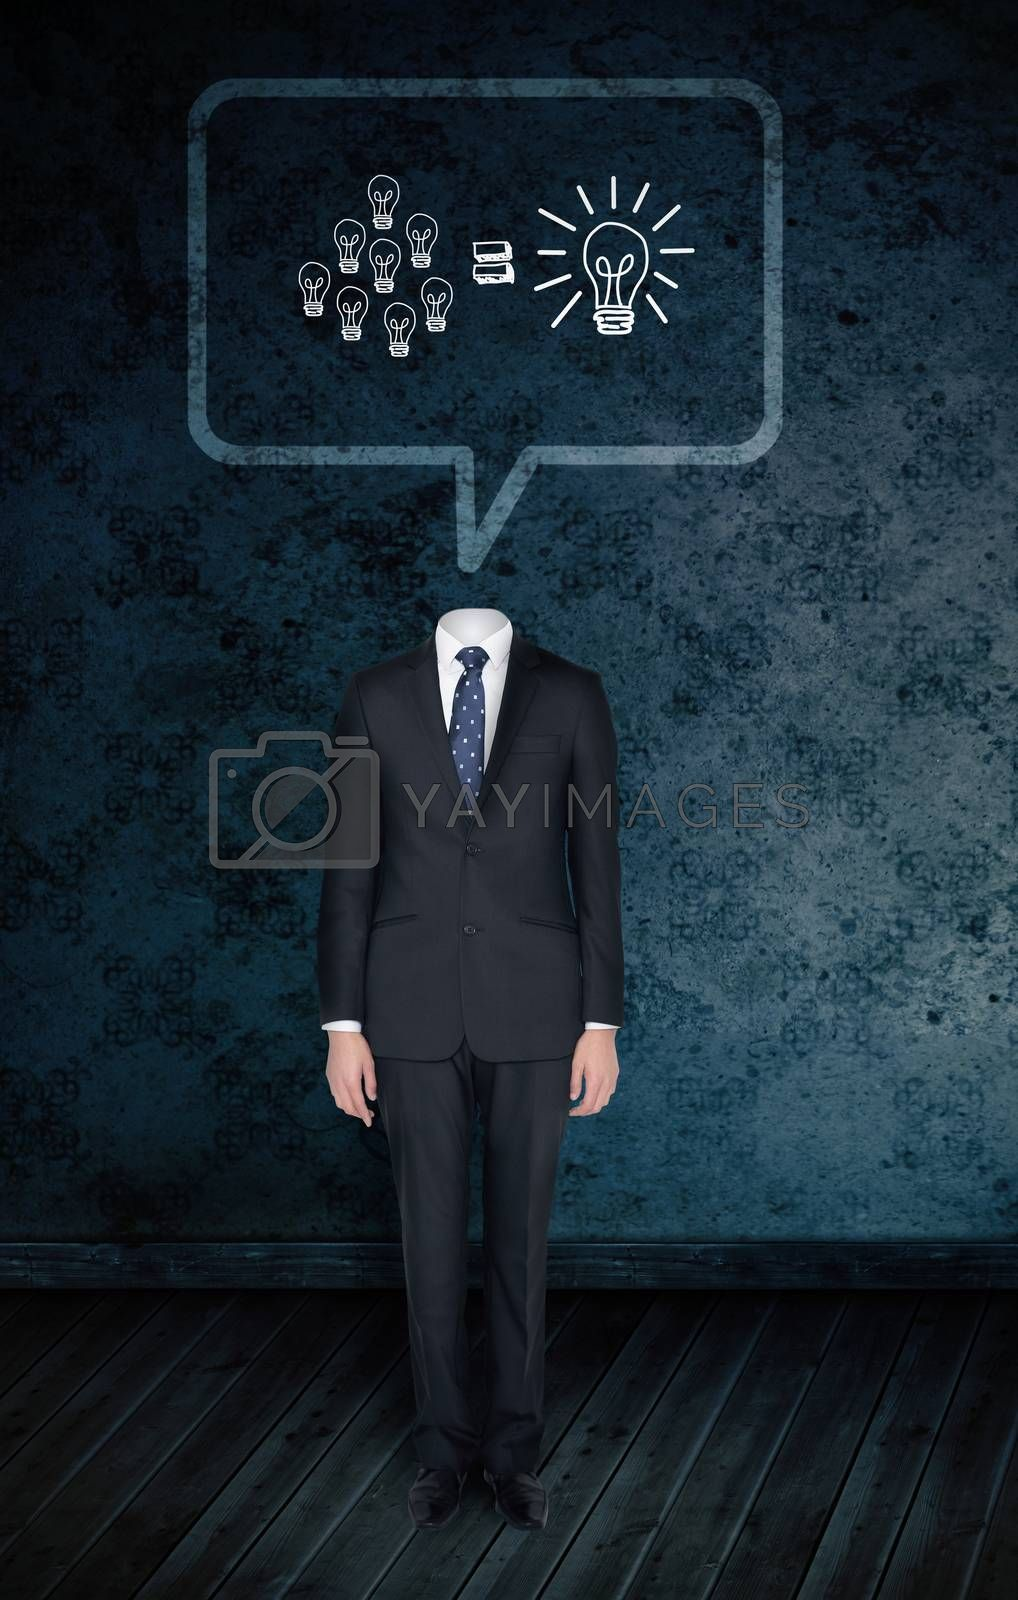 Composite image of headless businessman with light bulbs in speech bubble against dark grimy room